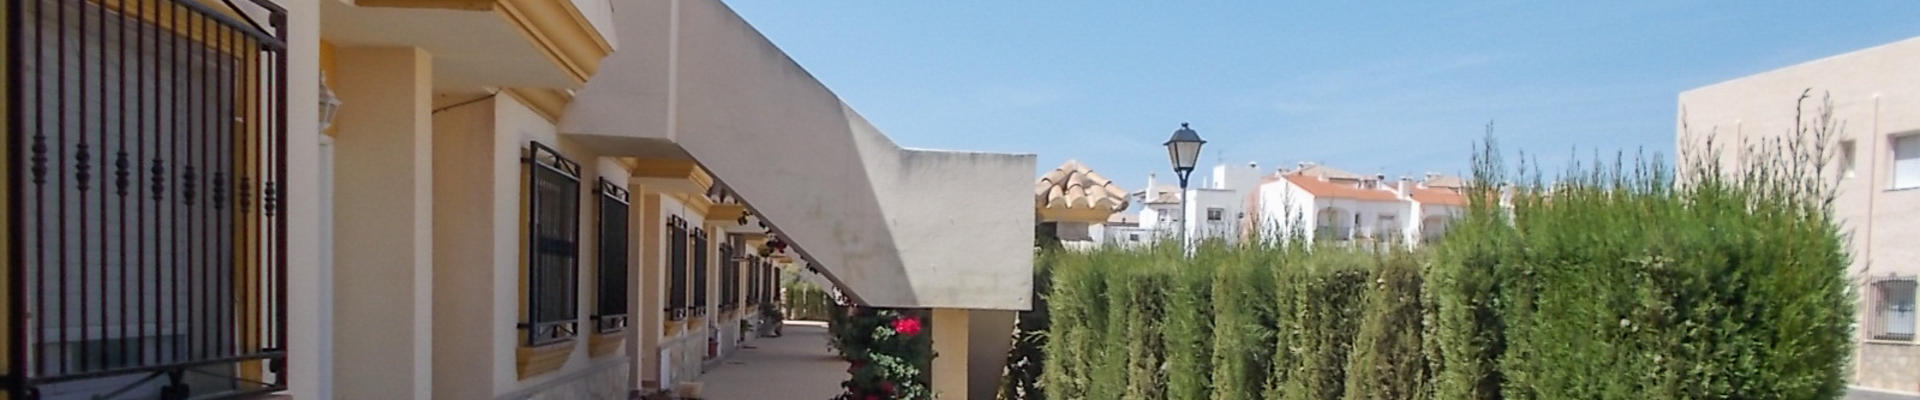 LV735: 3 Bedroom Townhouse for Sale